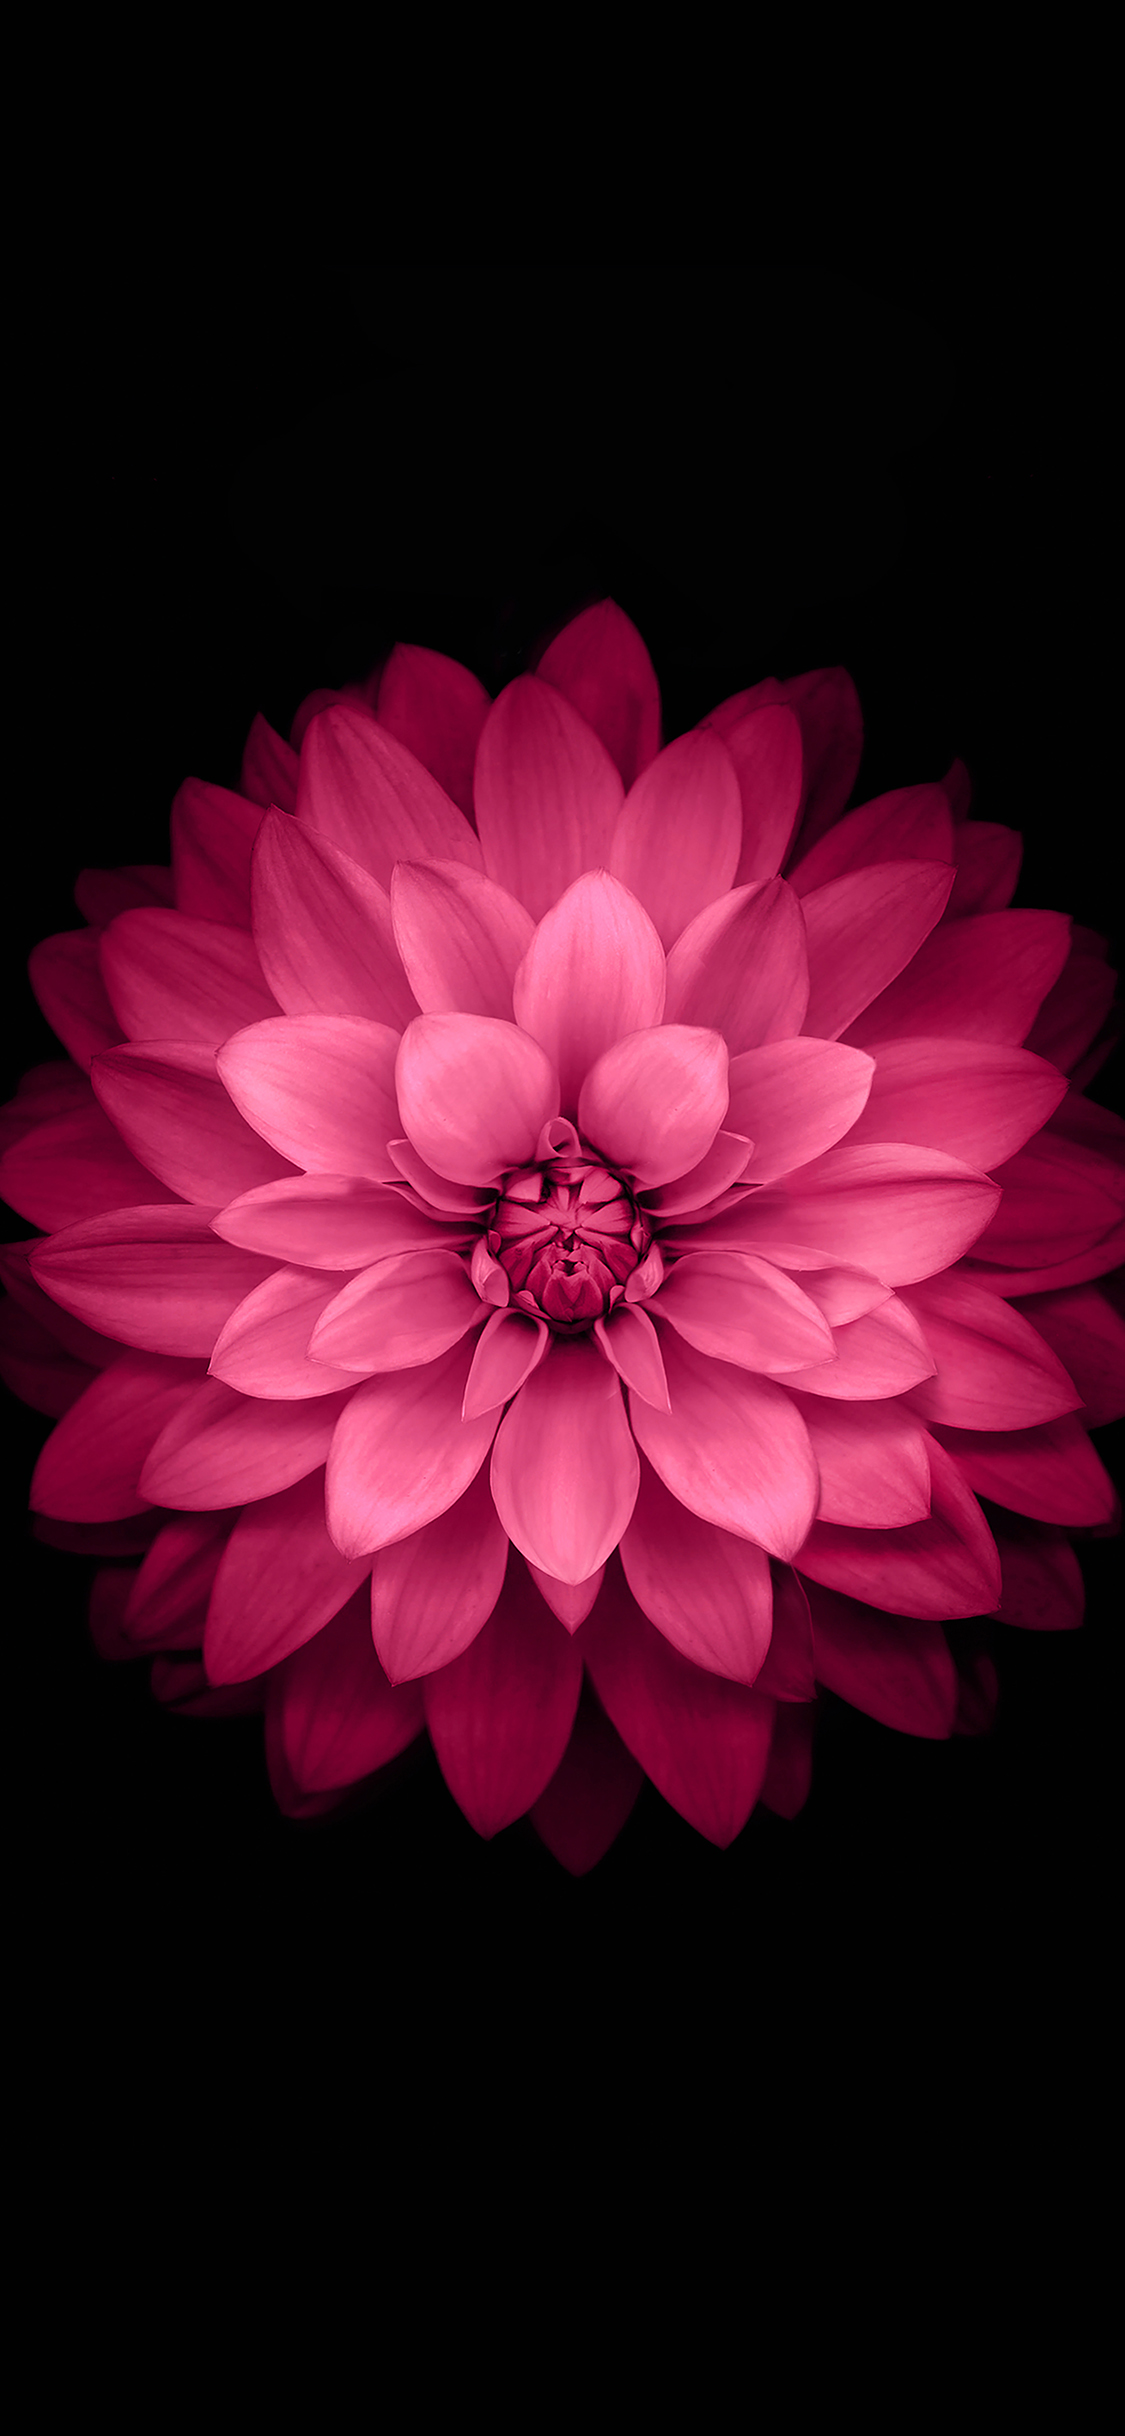 iPhoneXpapers.com-Apple-iPhone-wallpaper-ad40-apple-red-lotus-iphone6-plus-ios8-flower